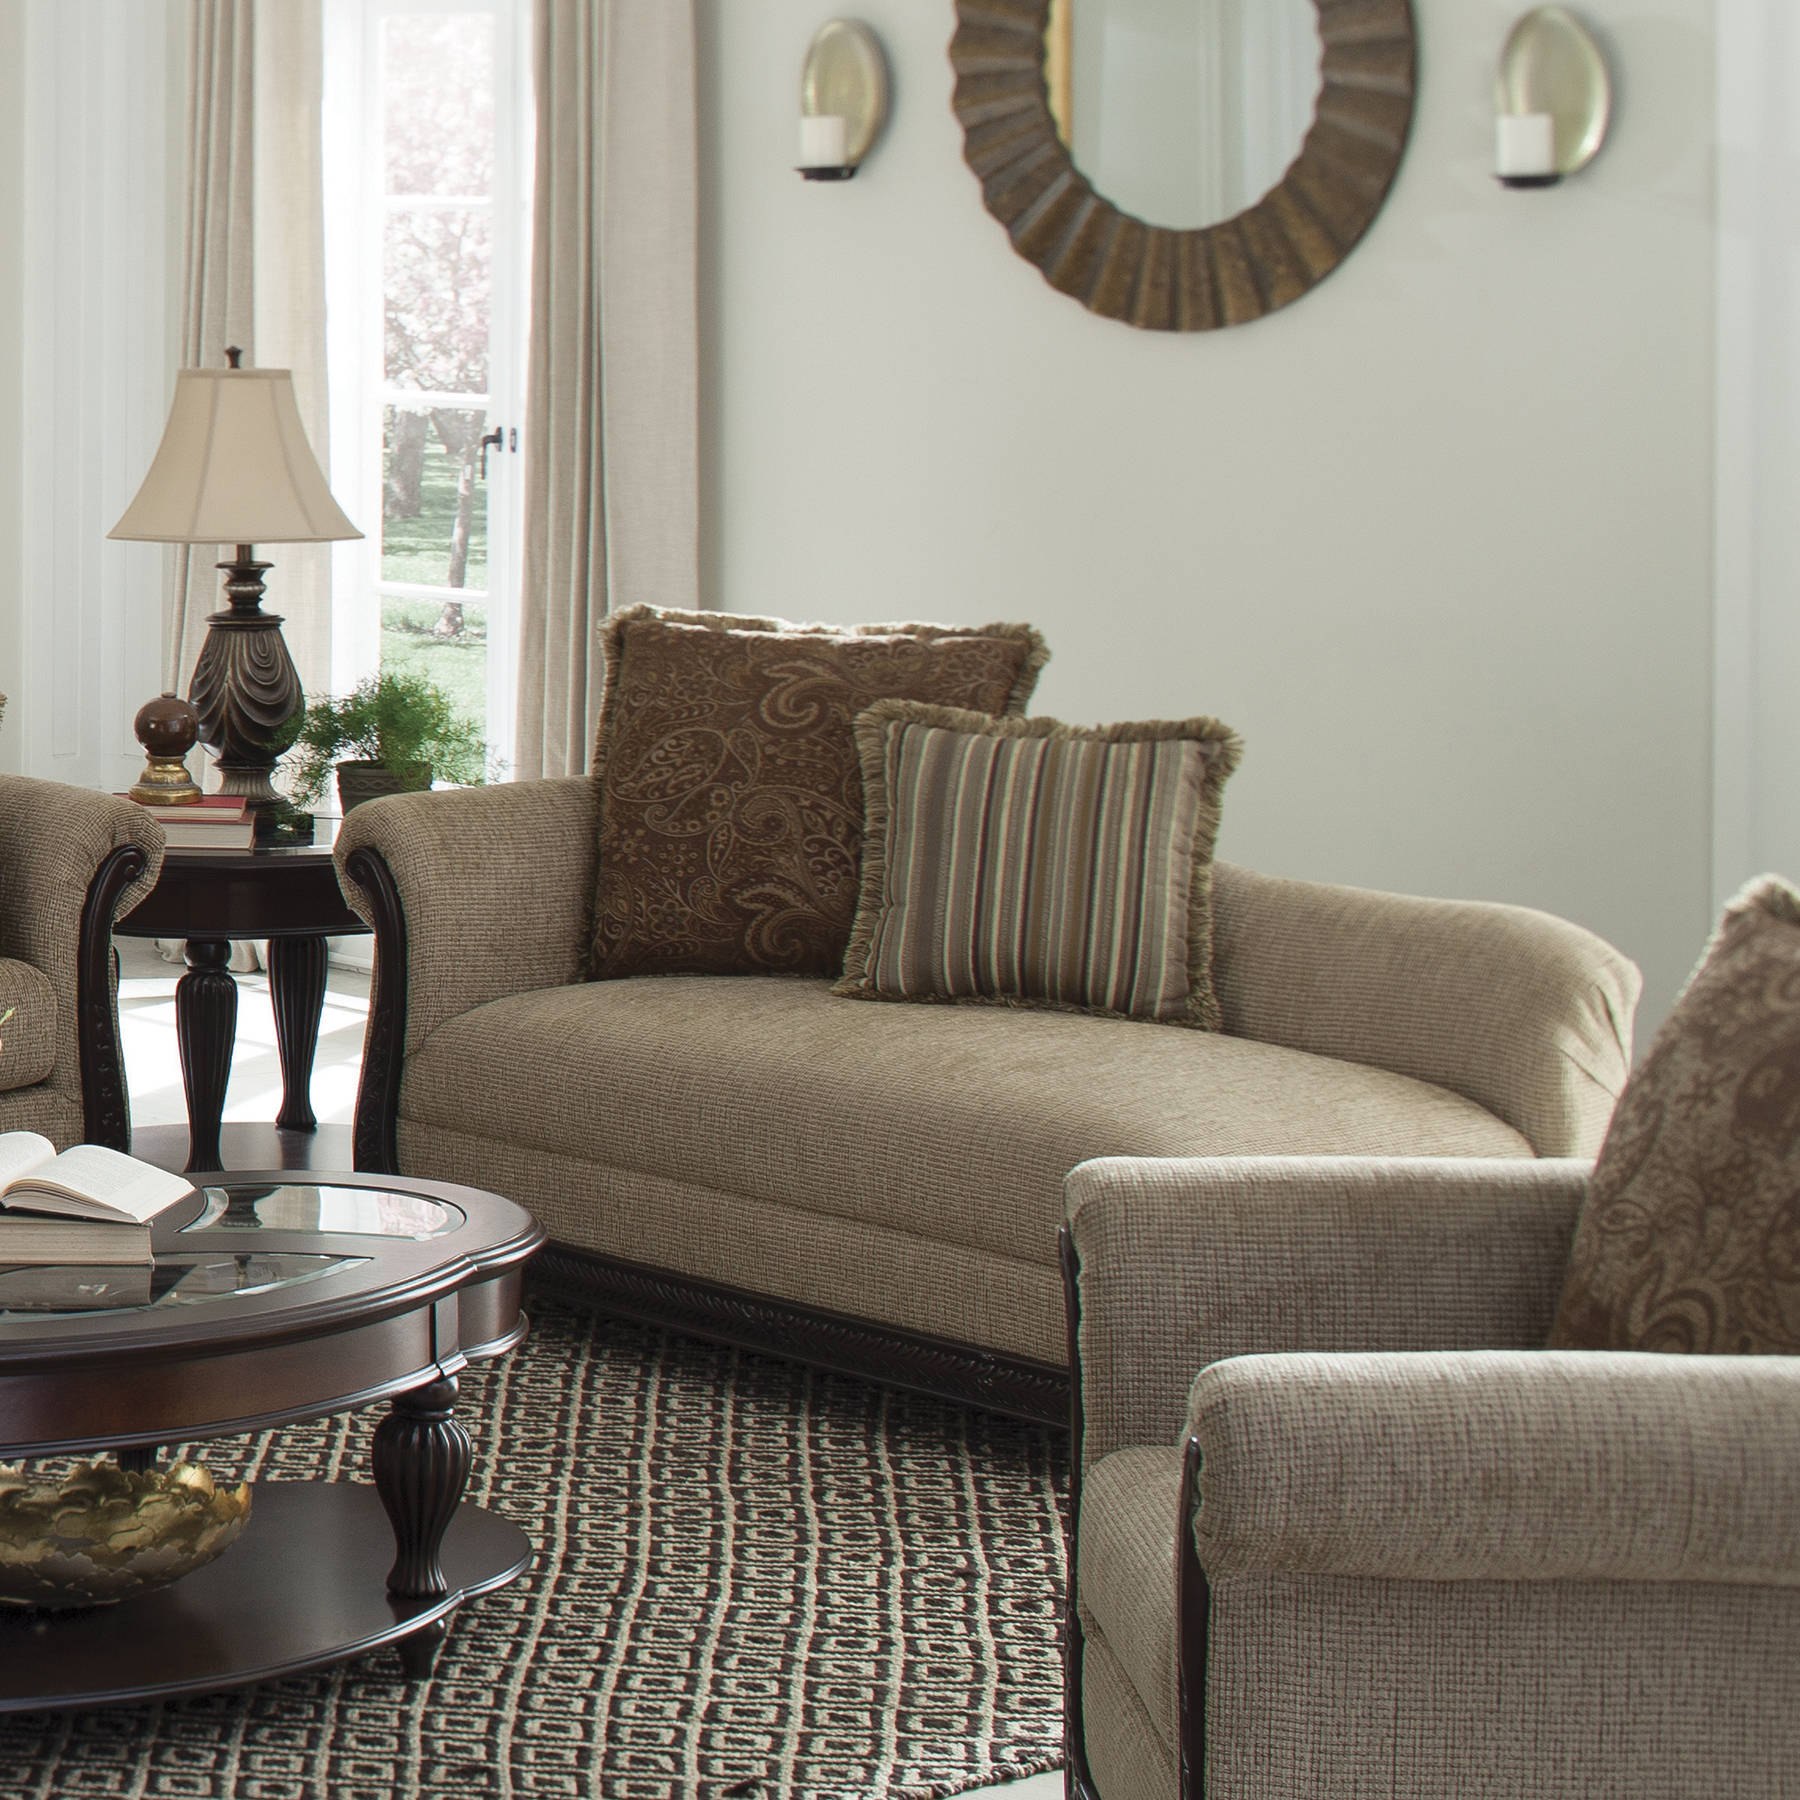 Coaster furniture beasley brown chaise the classy home for Accent traditional chaise by coaster